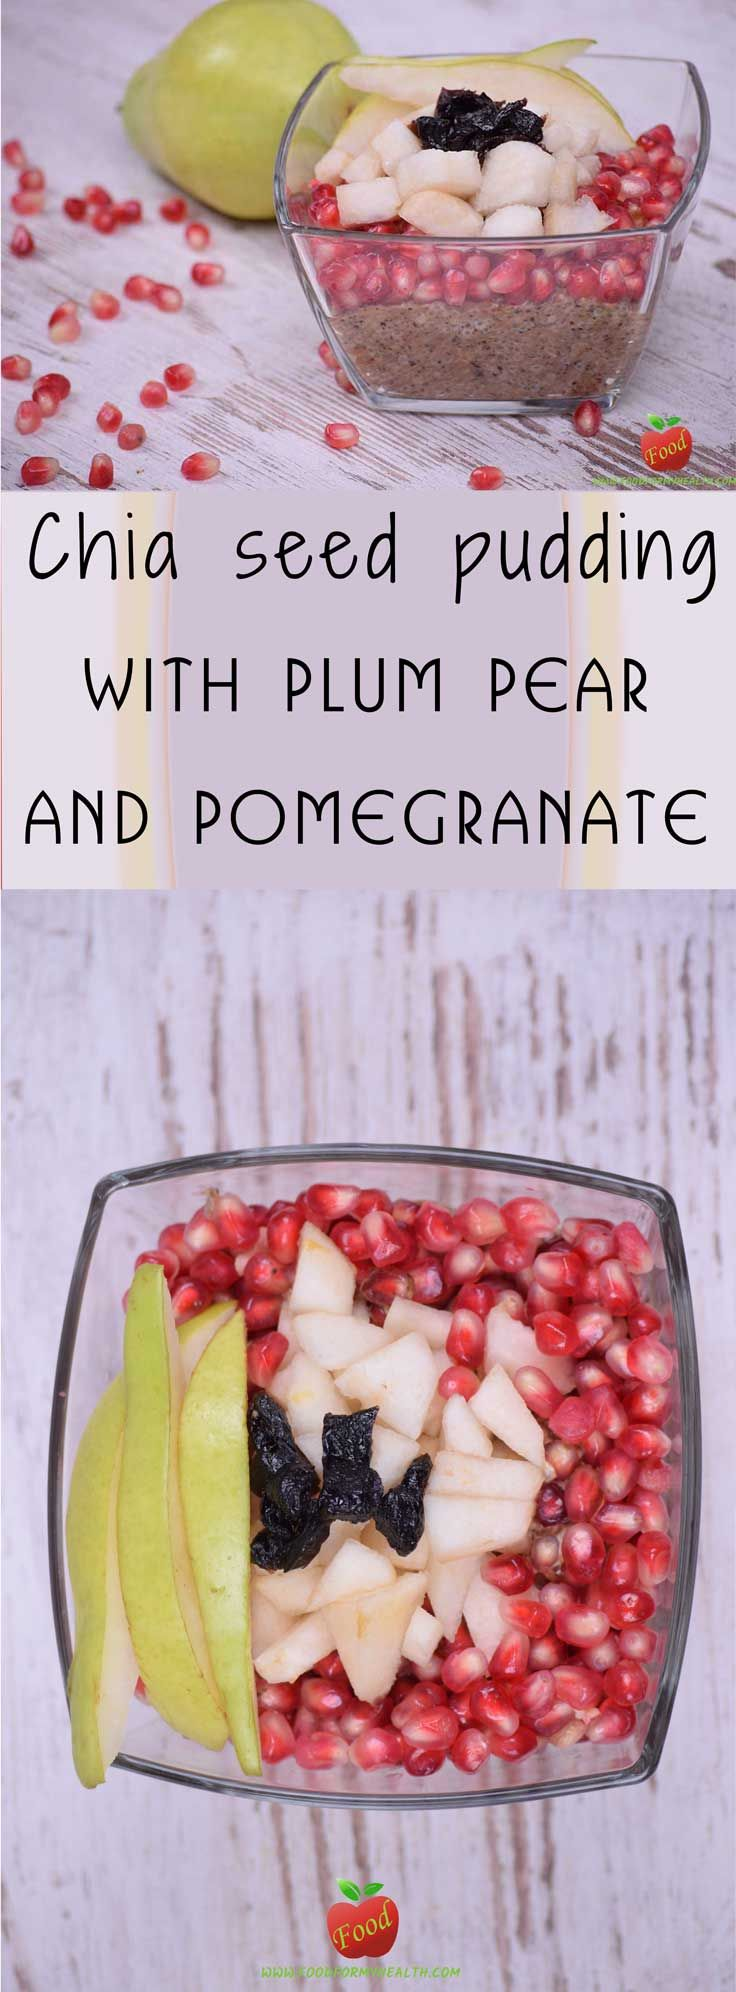 This chia seed pudding with plum pear and pomegranate is packed with plant protein, healthy fats and fiber.  #foodformyhealth #healthy #food #breakfast #vegan #veganfoodshare #instafood #yummy #health #healthyfood #chia #delicious #veganfood #foodie #organic #pastry #nutrition #veganrecipes #plantbased #rawvegan #tasty #recipe #foodpic #veganfood #whatveganseat #govegan #veganism #veganlife #vegansofinstagram #veganfoodporn